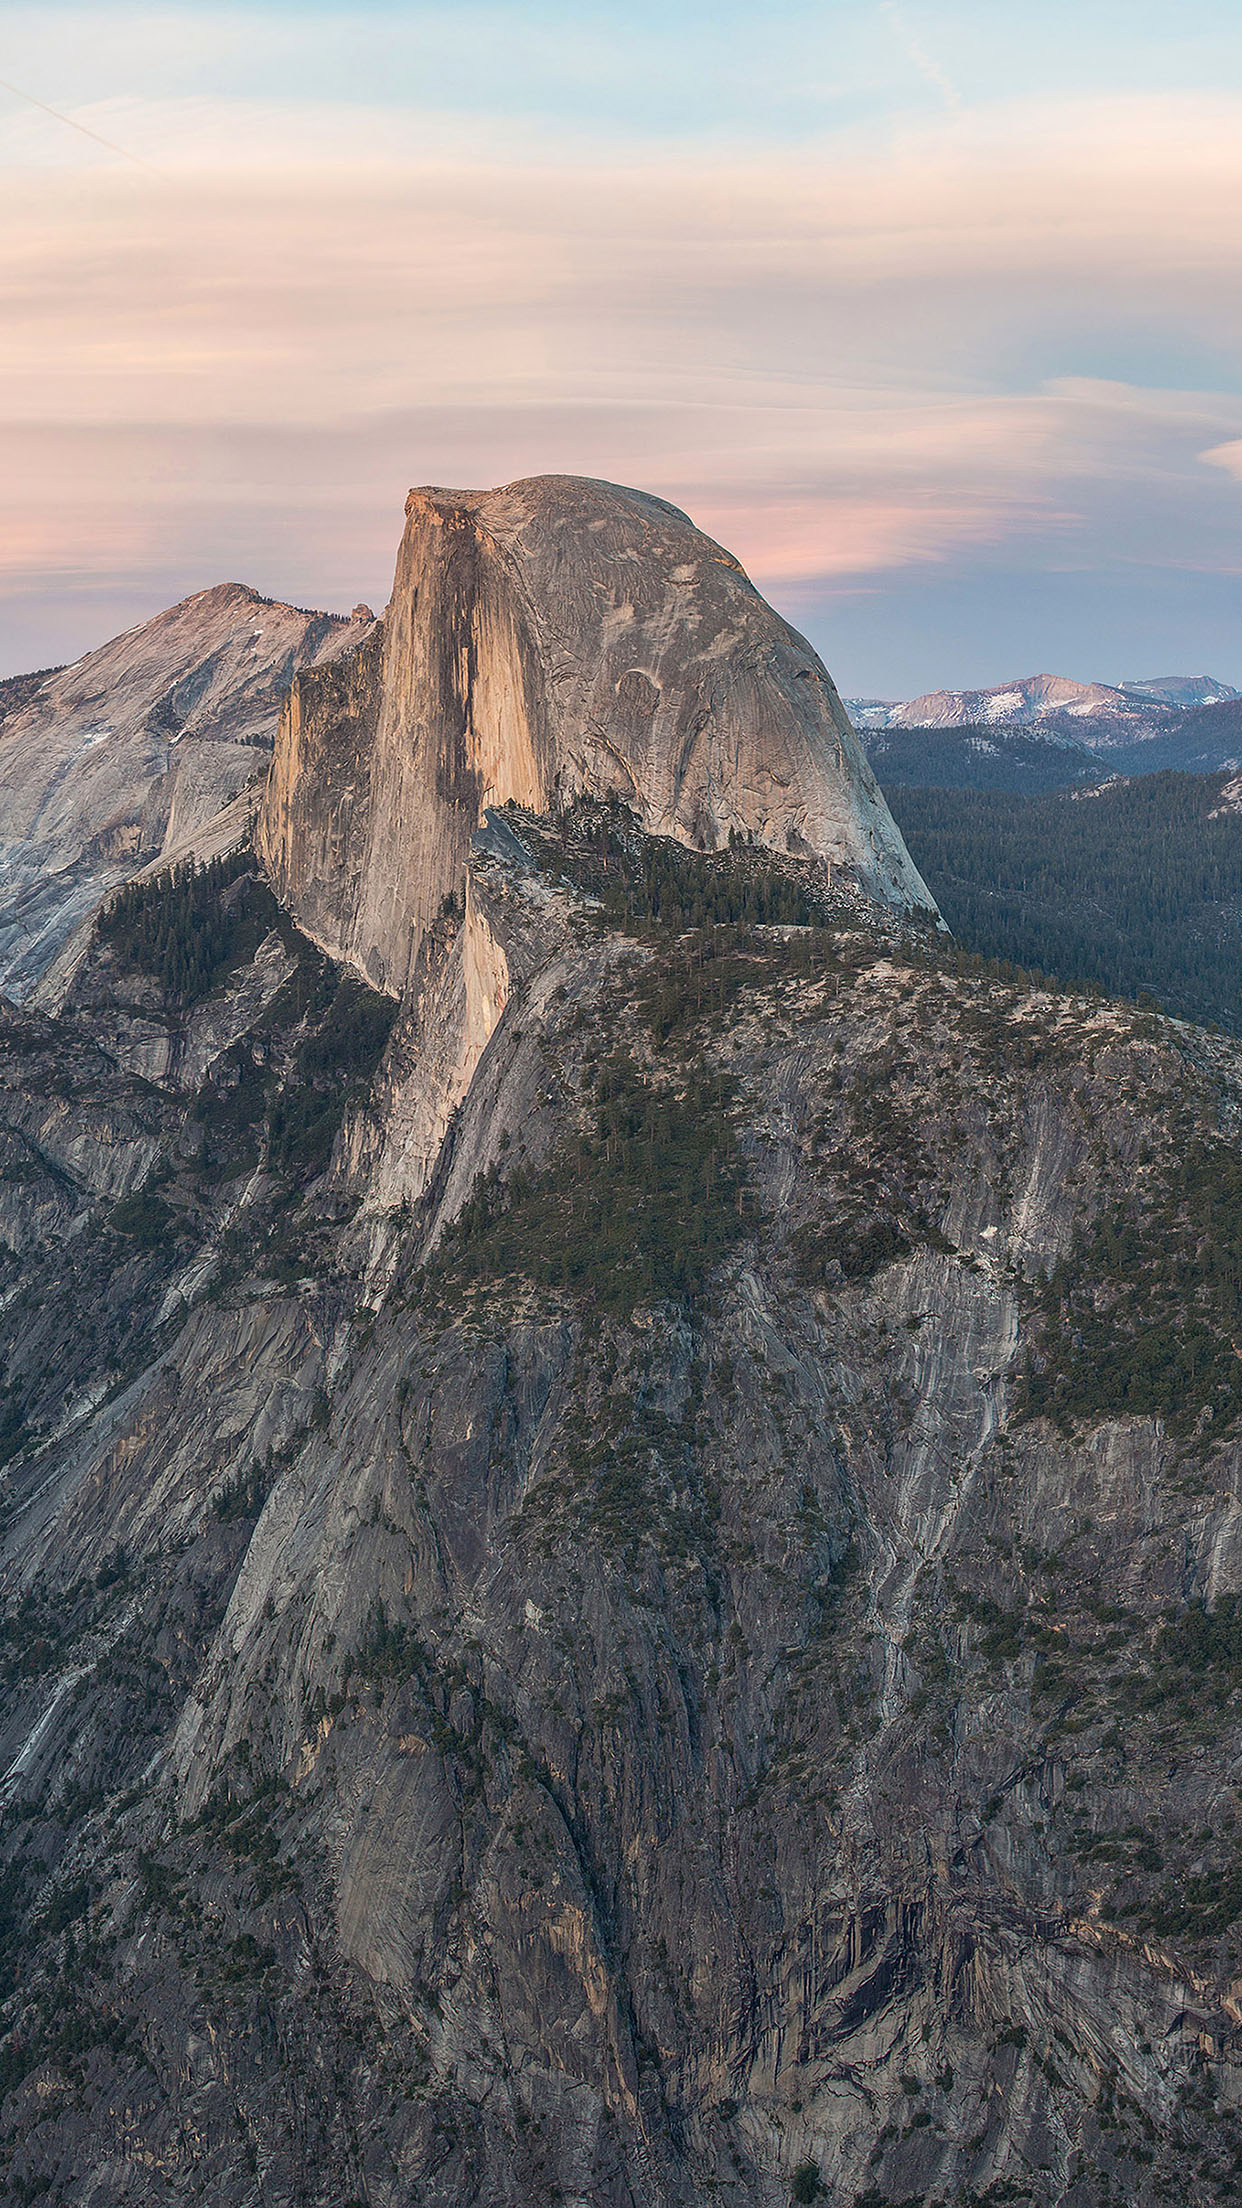 Iphone X Wallpaper Hd Download Yosemite National Park Wallpapers For Iphone And Ipad